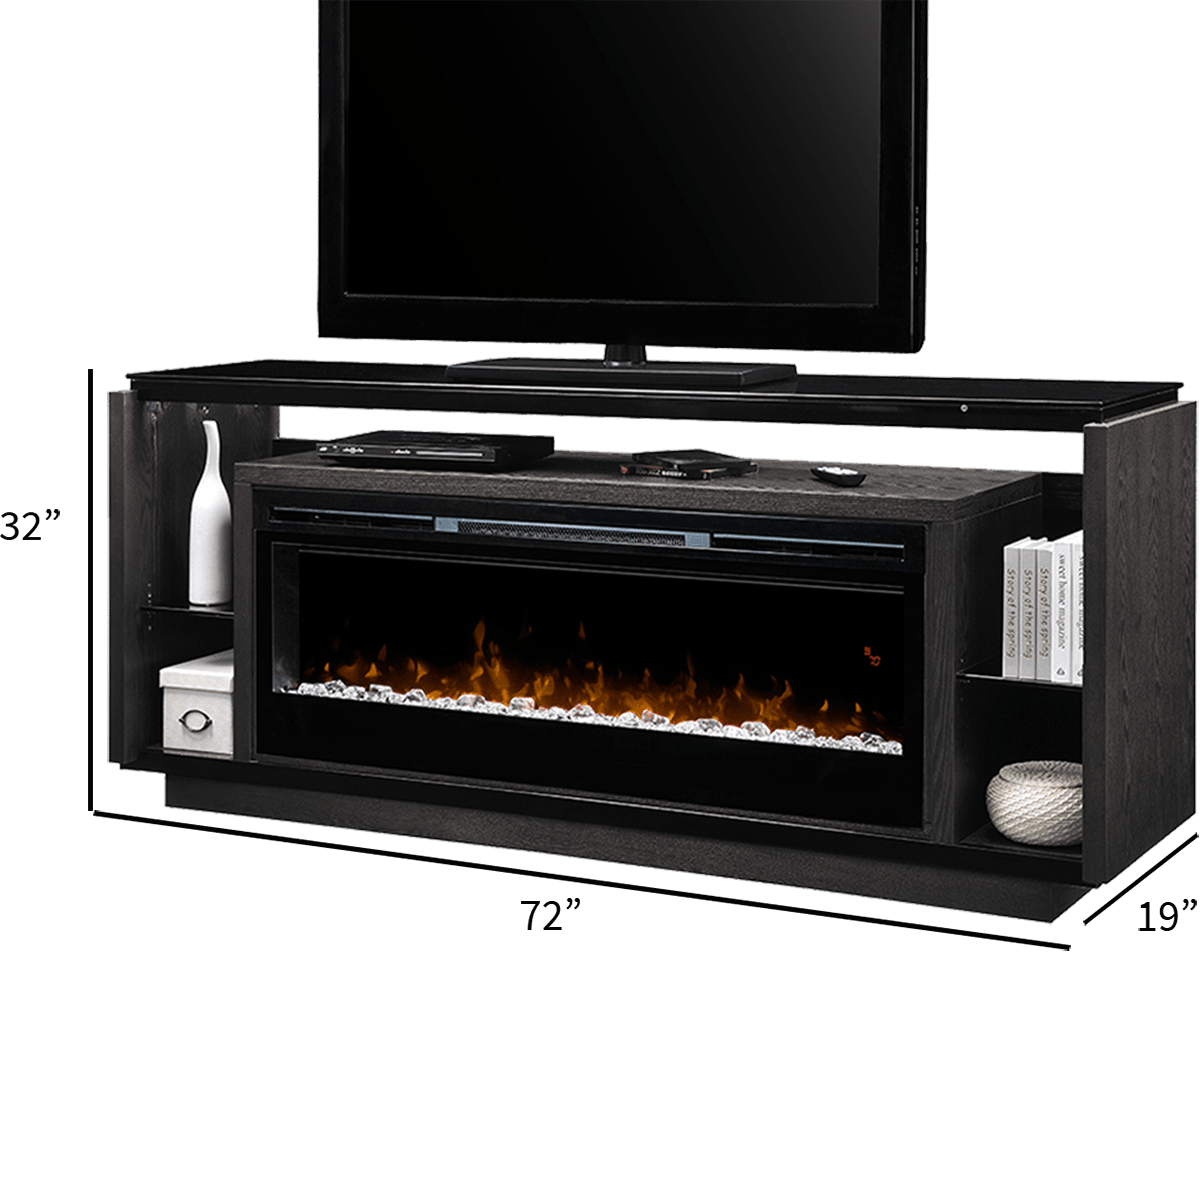 Dimplex David Media Console Fireplace Sylvane Electric Garage Heaters With Thermostat 1